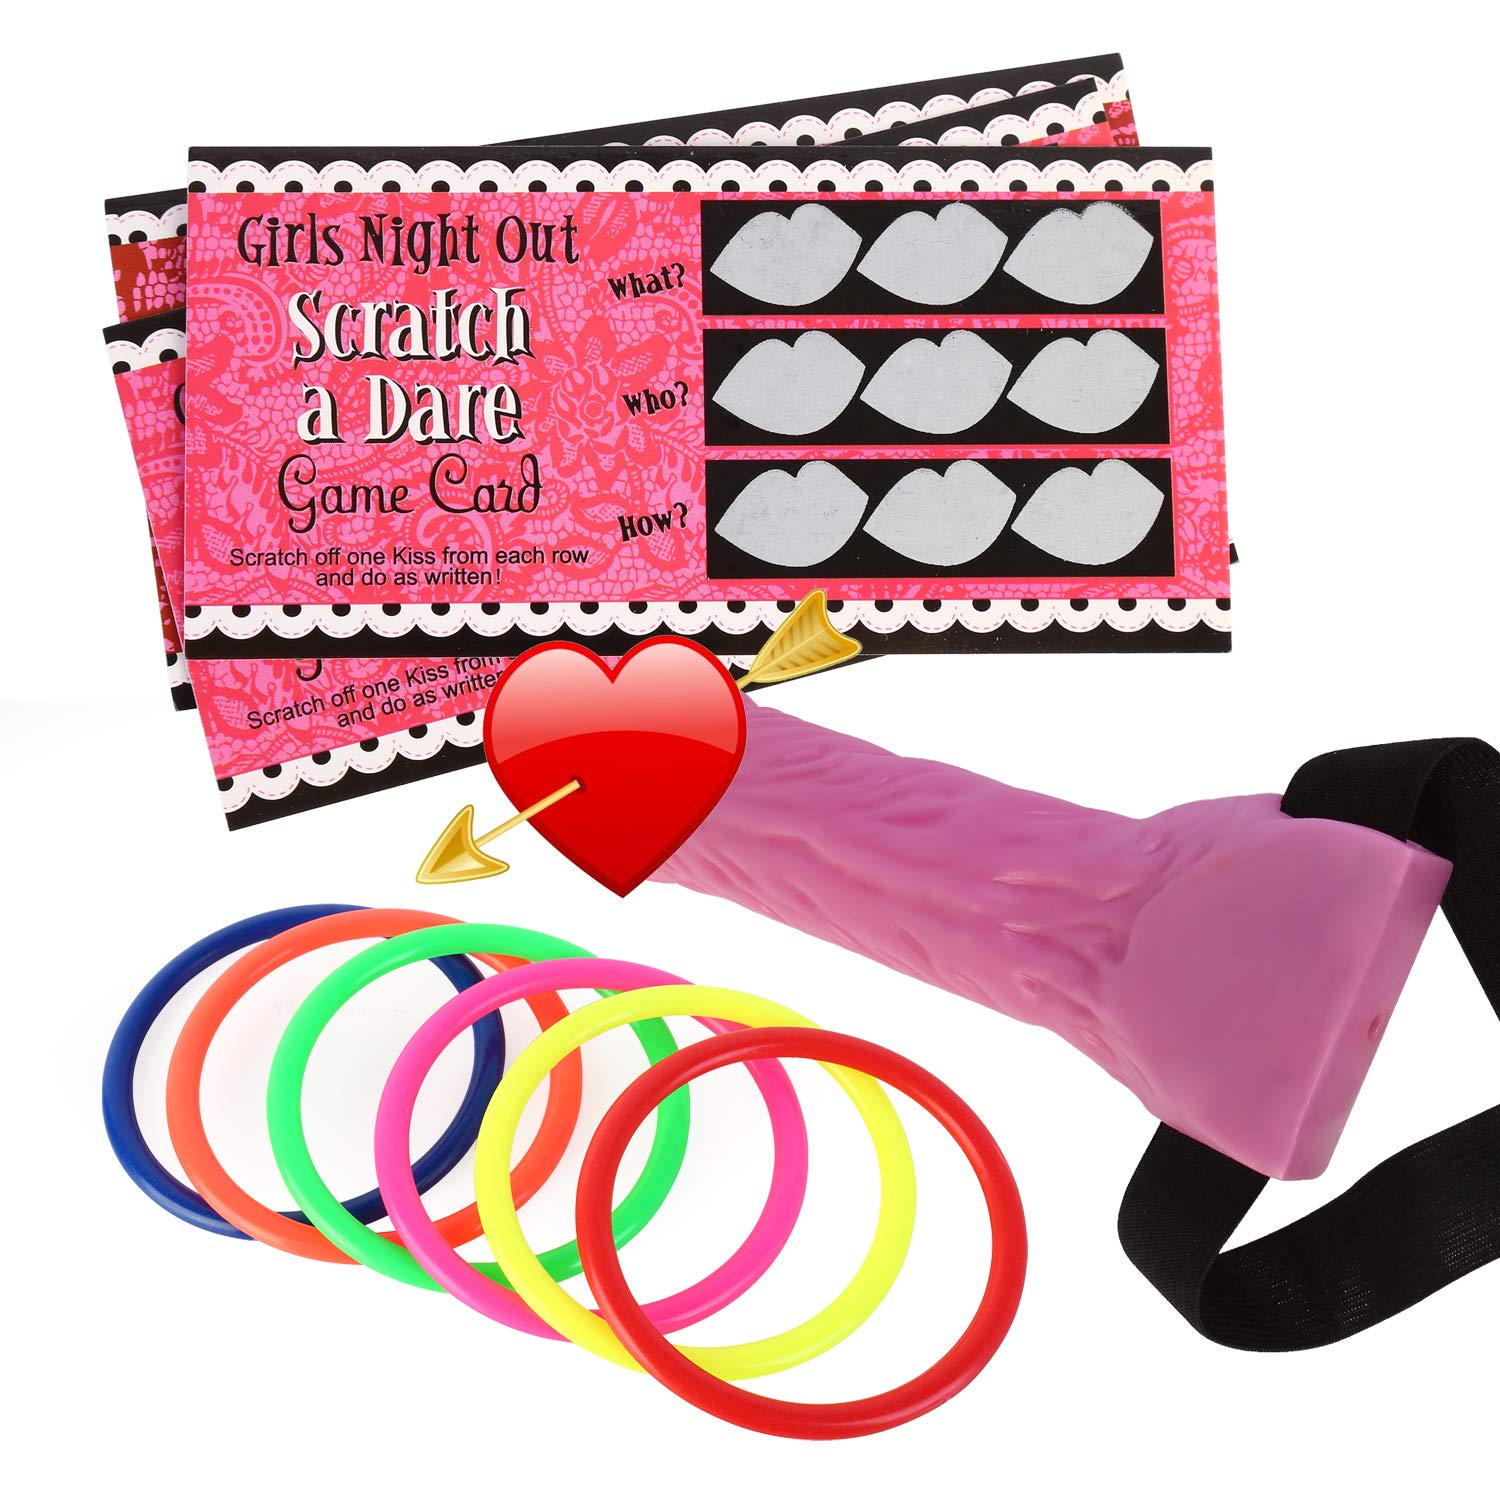 ATrigger Hen Party Games Decorations Dick Heads& Dare Scratch Off Cards, Funny Adult Game Ring Toss Hen Night Party Girls Out Games